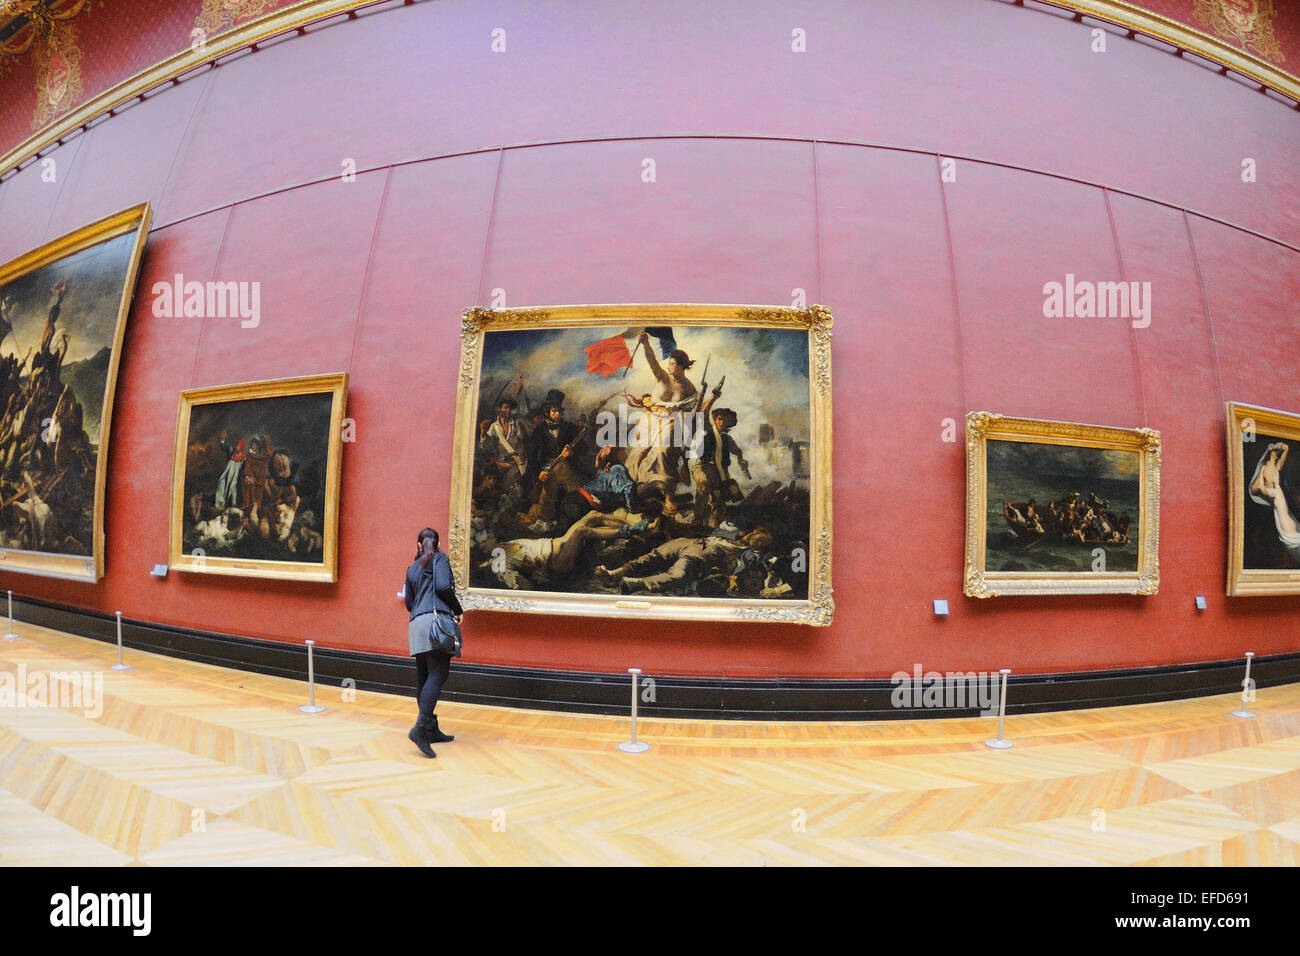 PARIS - MAR 1: The paintings of Eugene Delacroix at the Louvre Museum (Musee du Louvre). - Stock Image